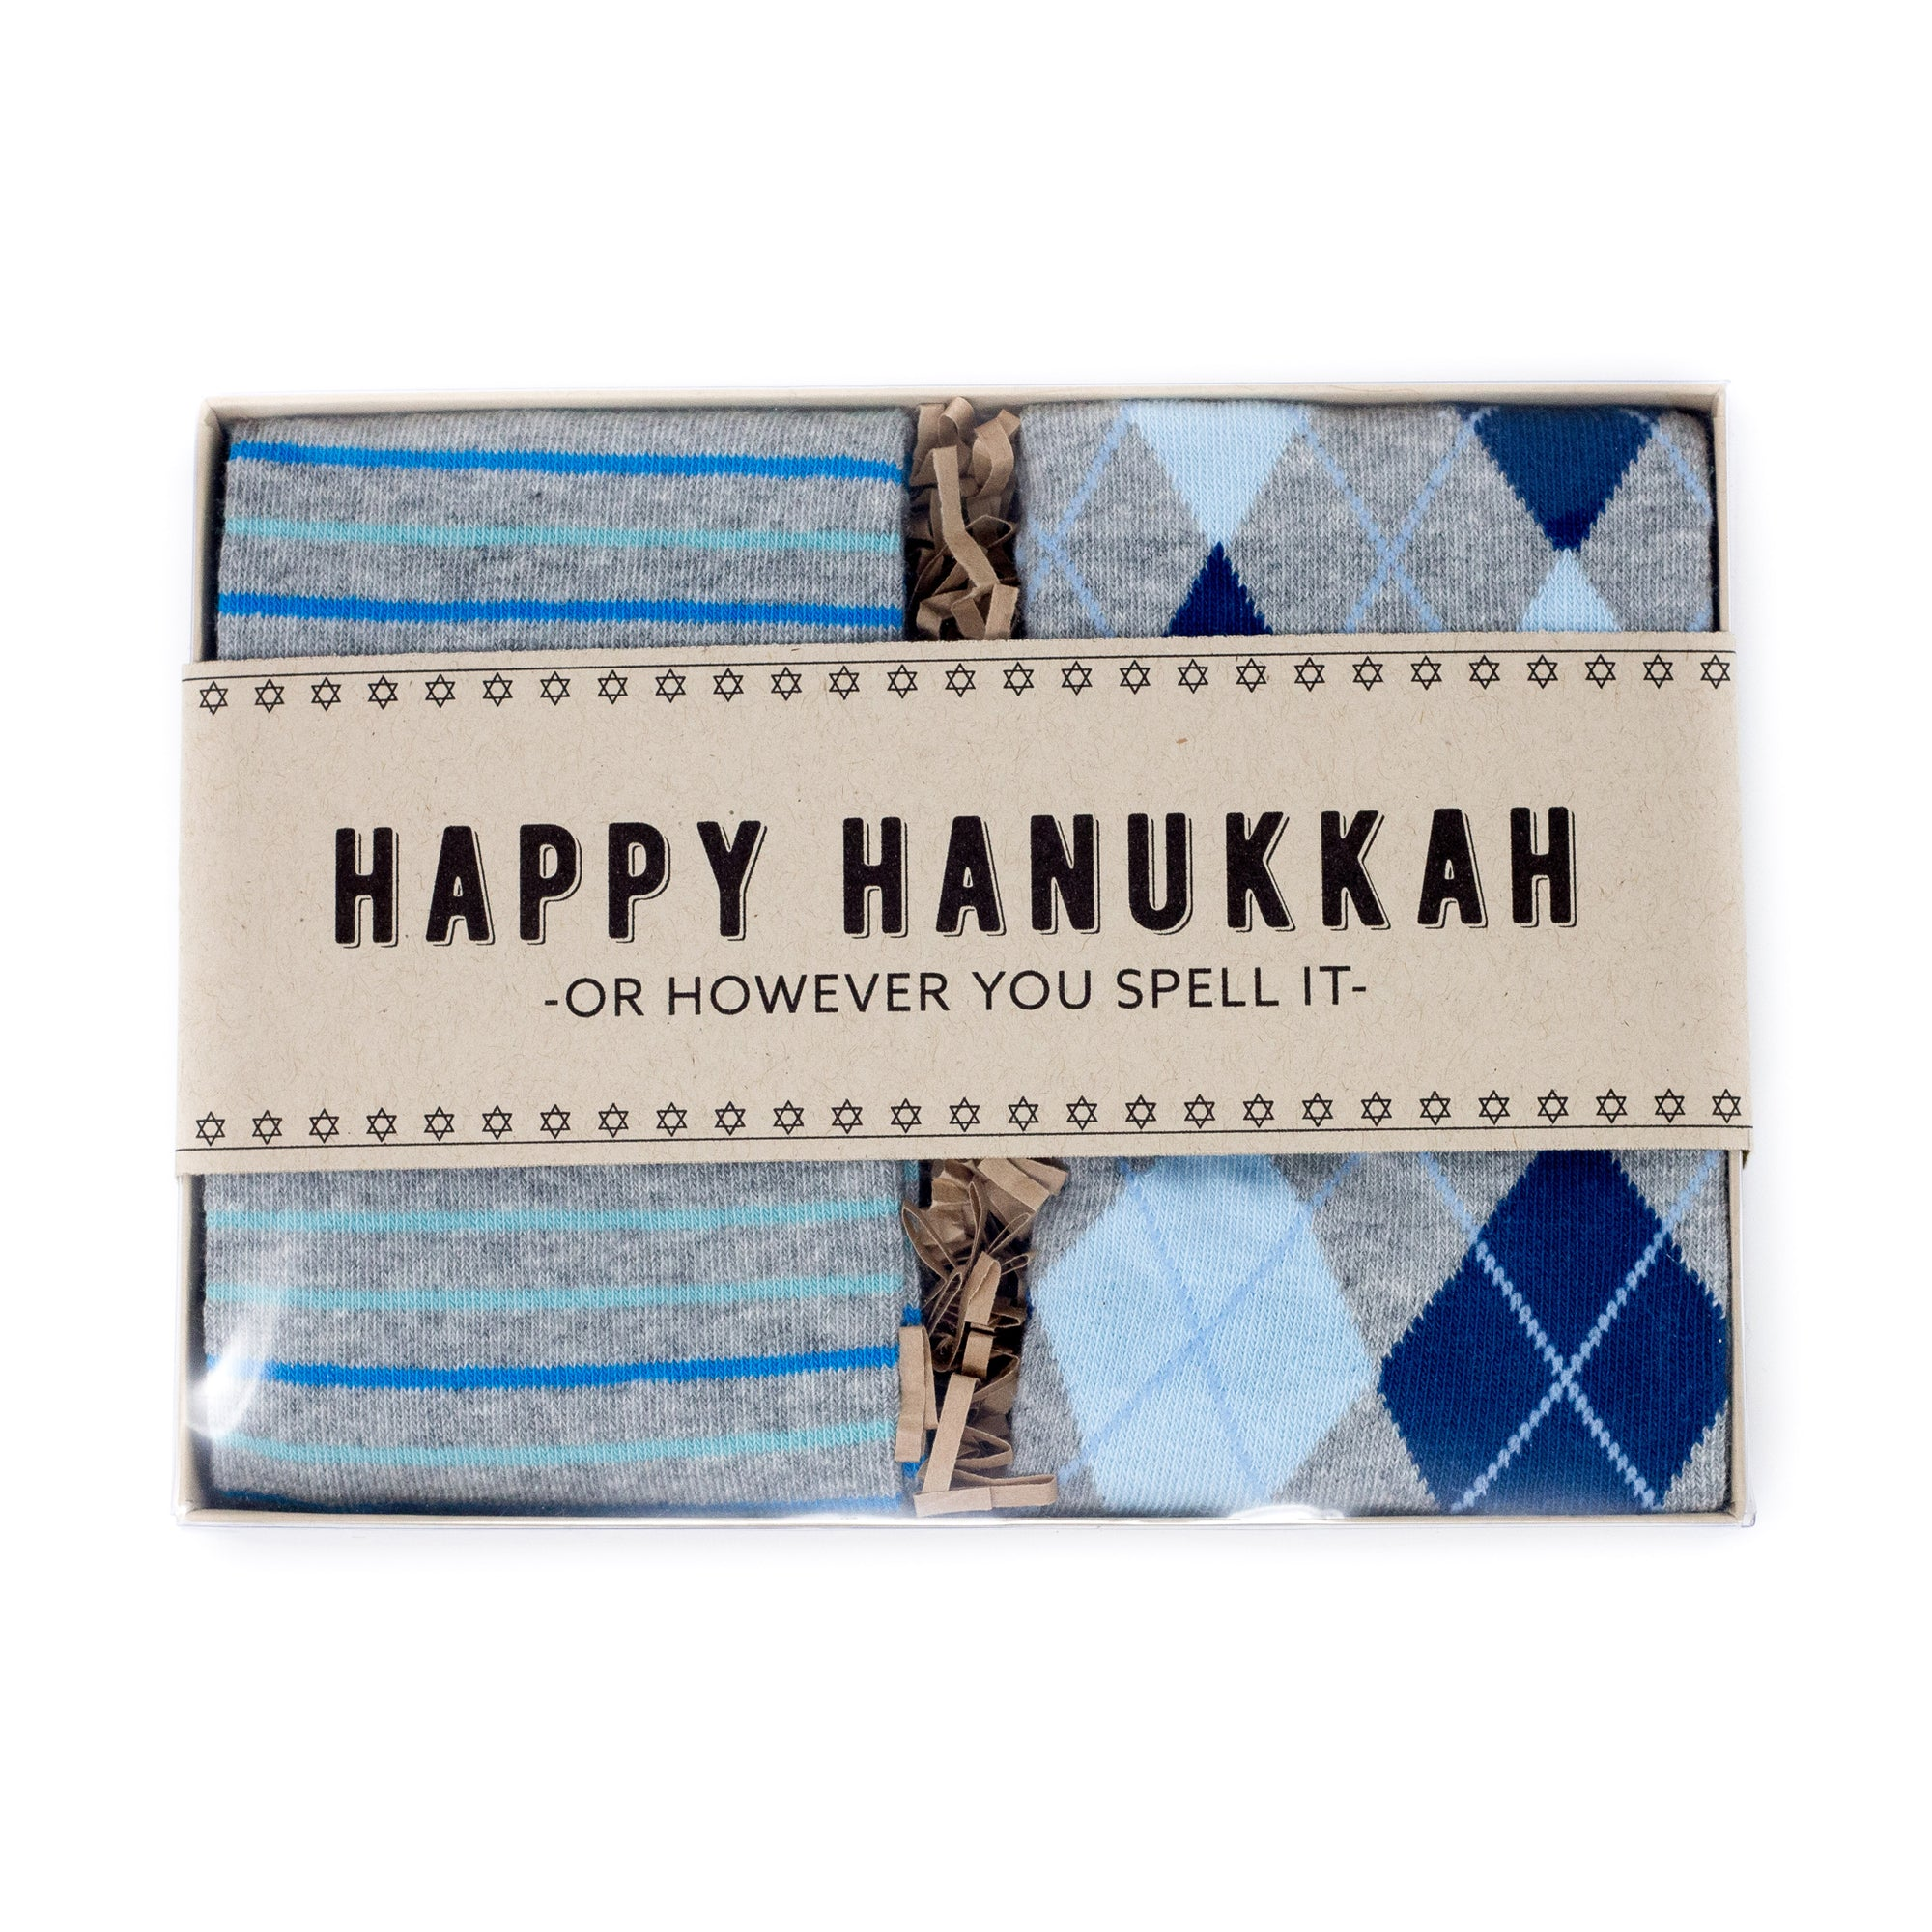 Hanukkah Sock Gift Box Set | NoColdFeet